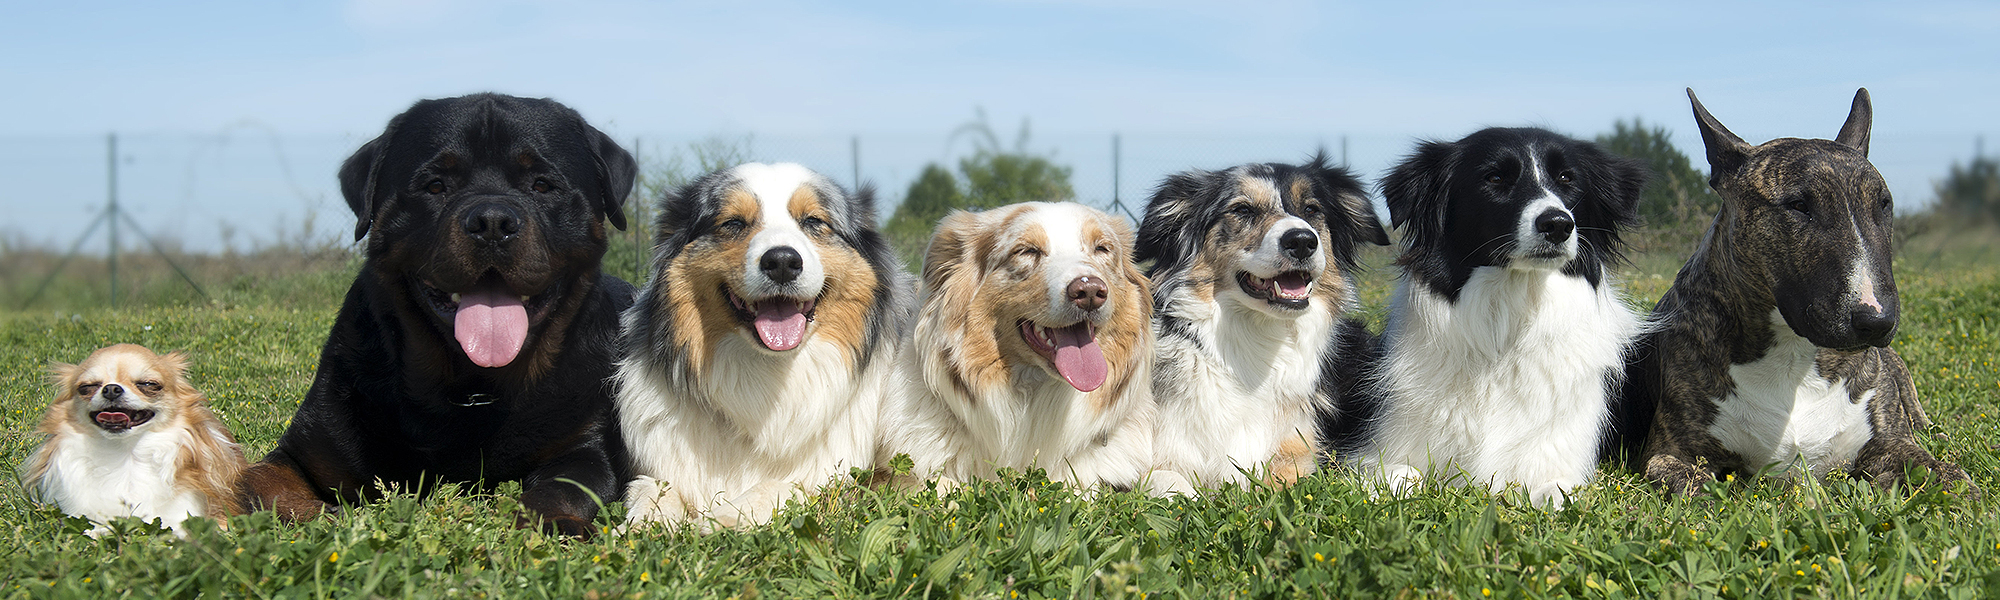 Row of Happy Dogs